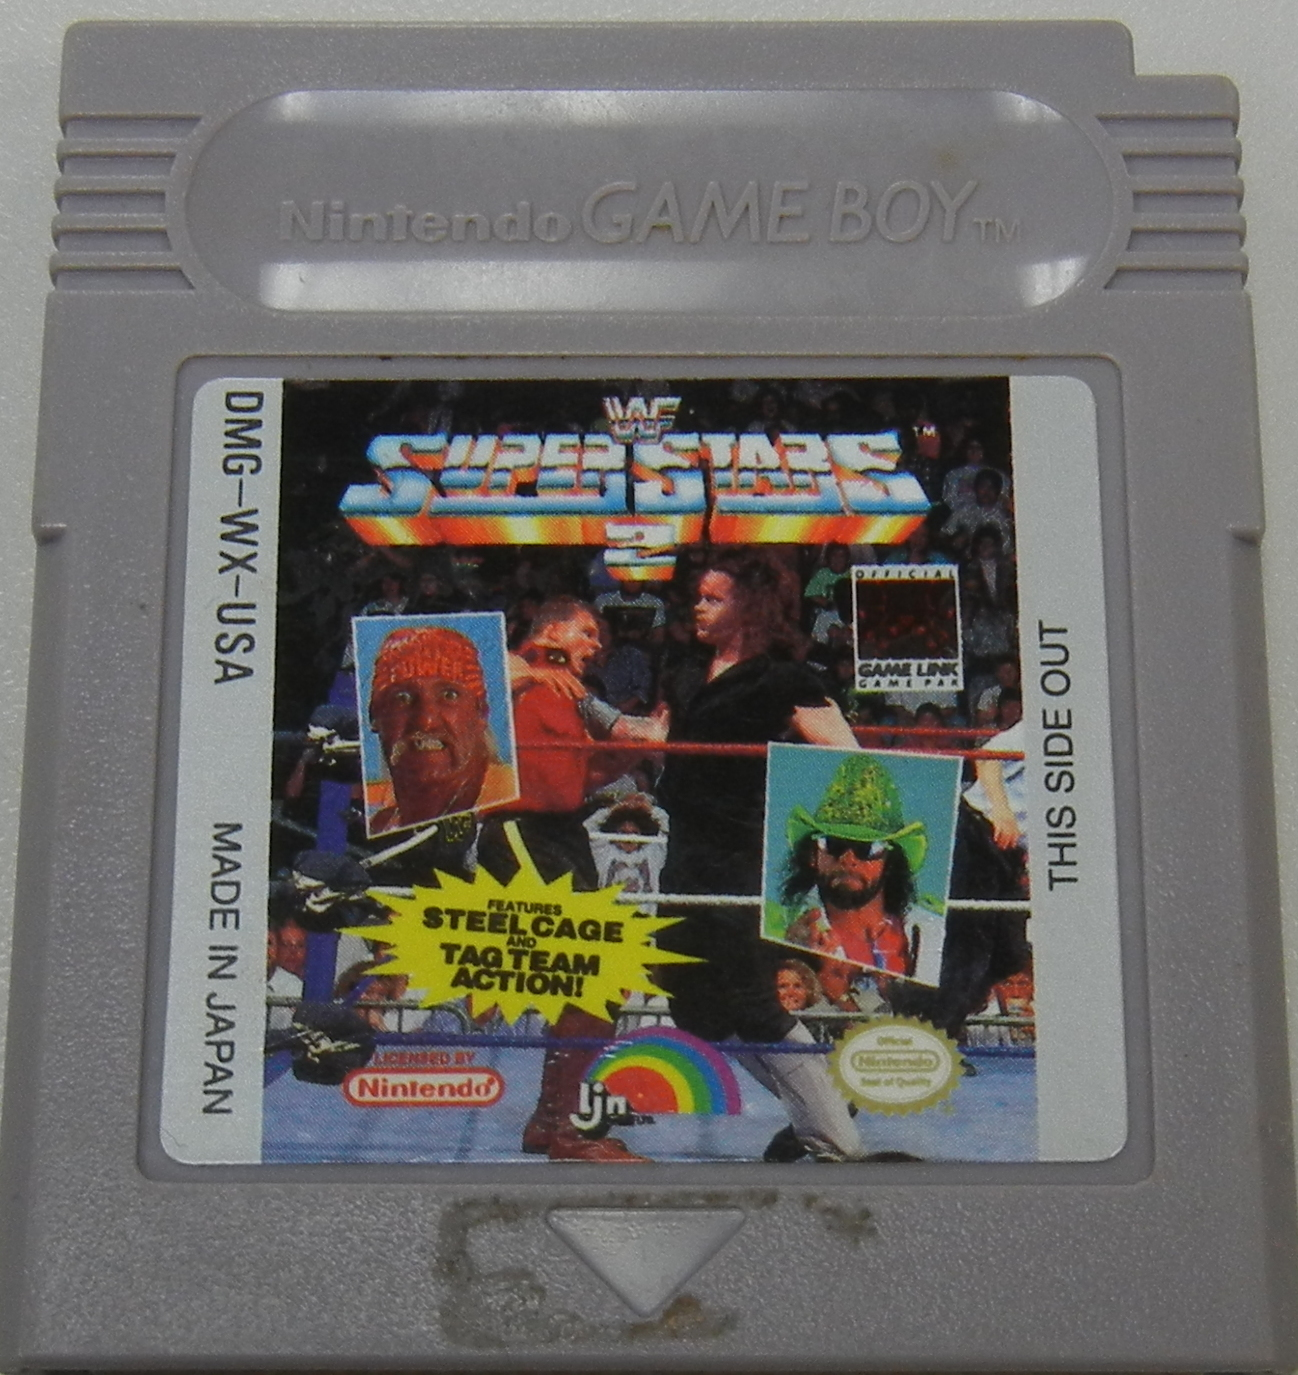 GAME BOY WWF SUPERSTARS 2